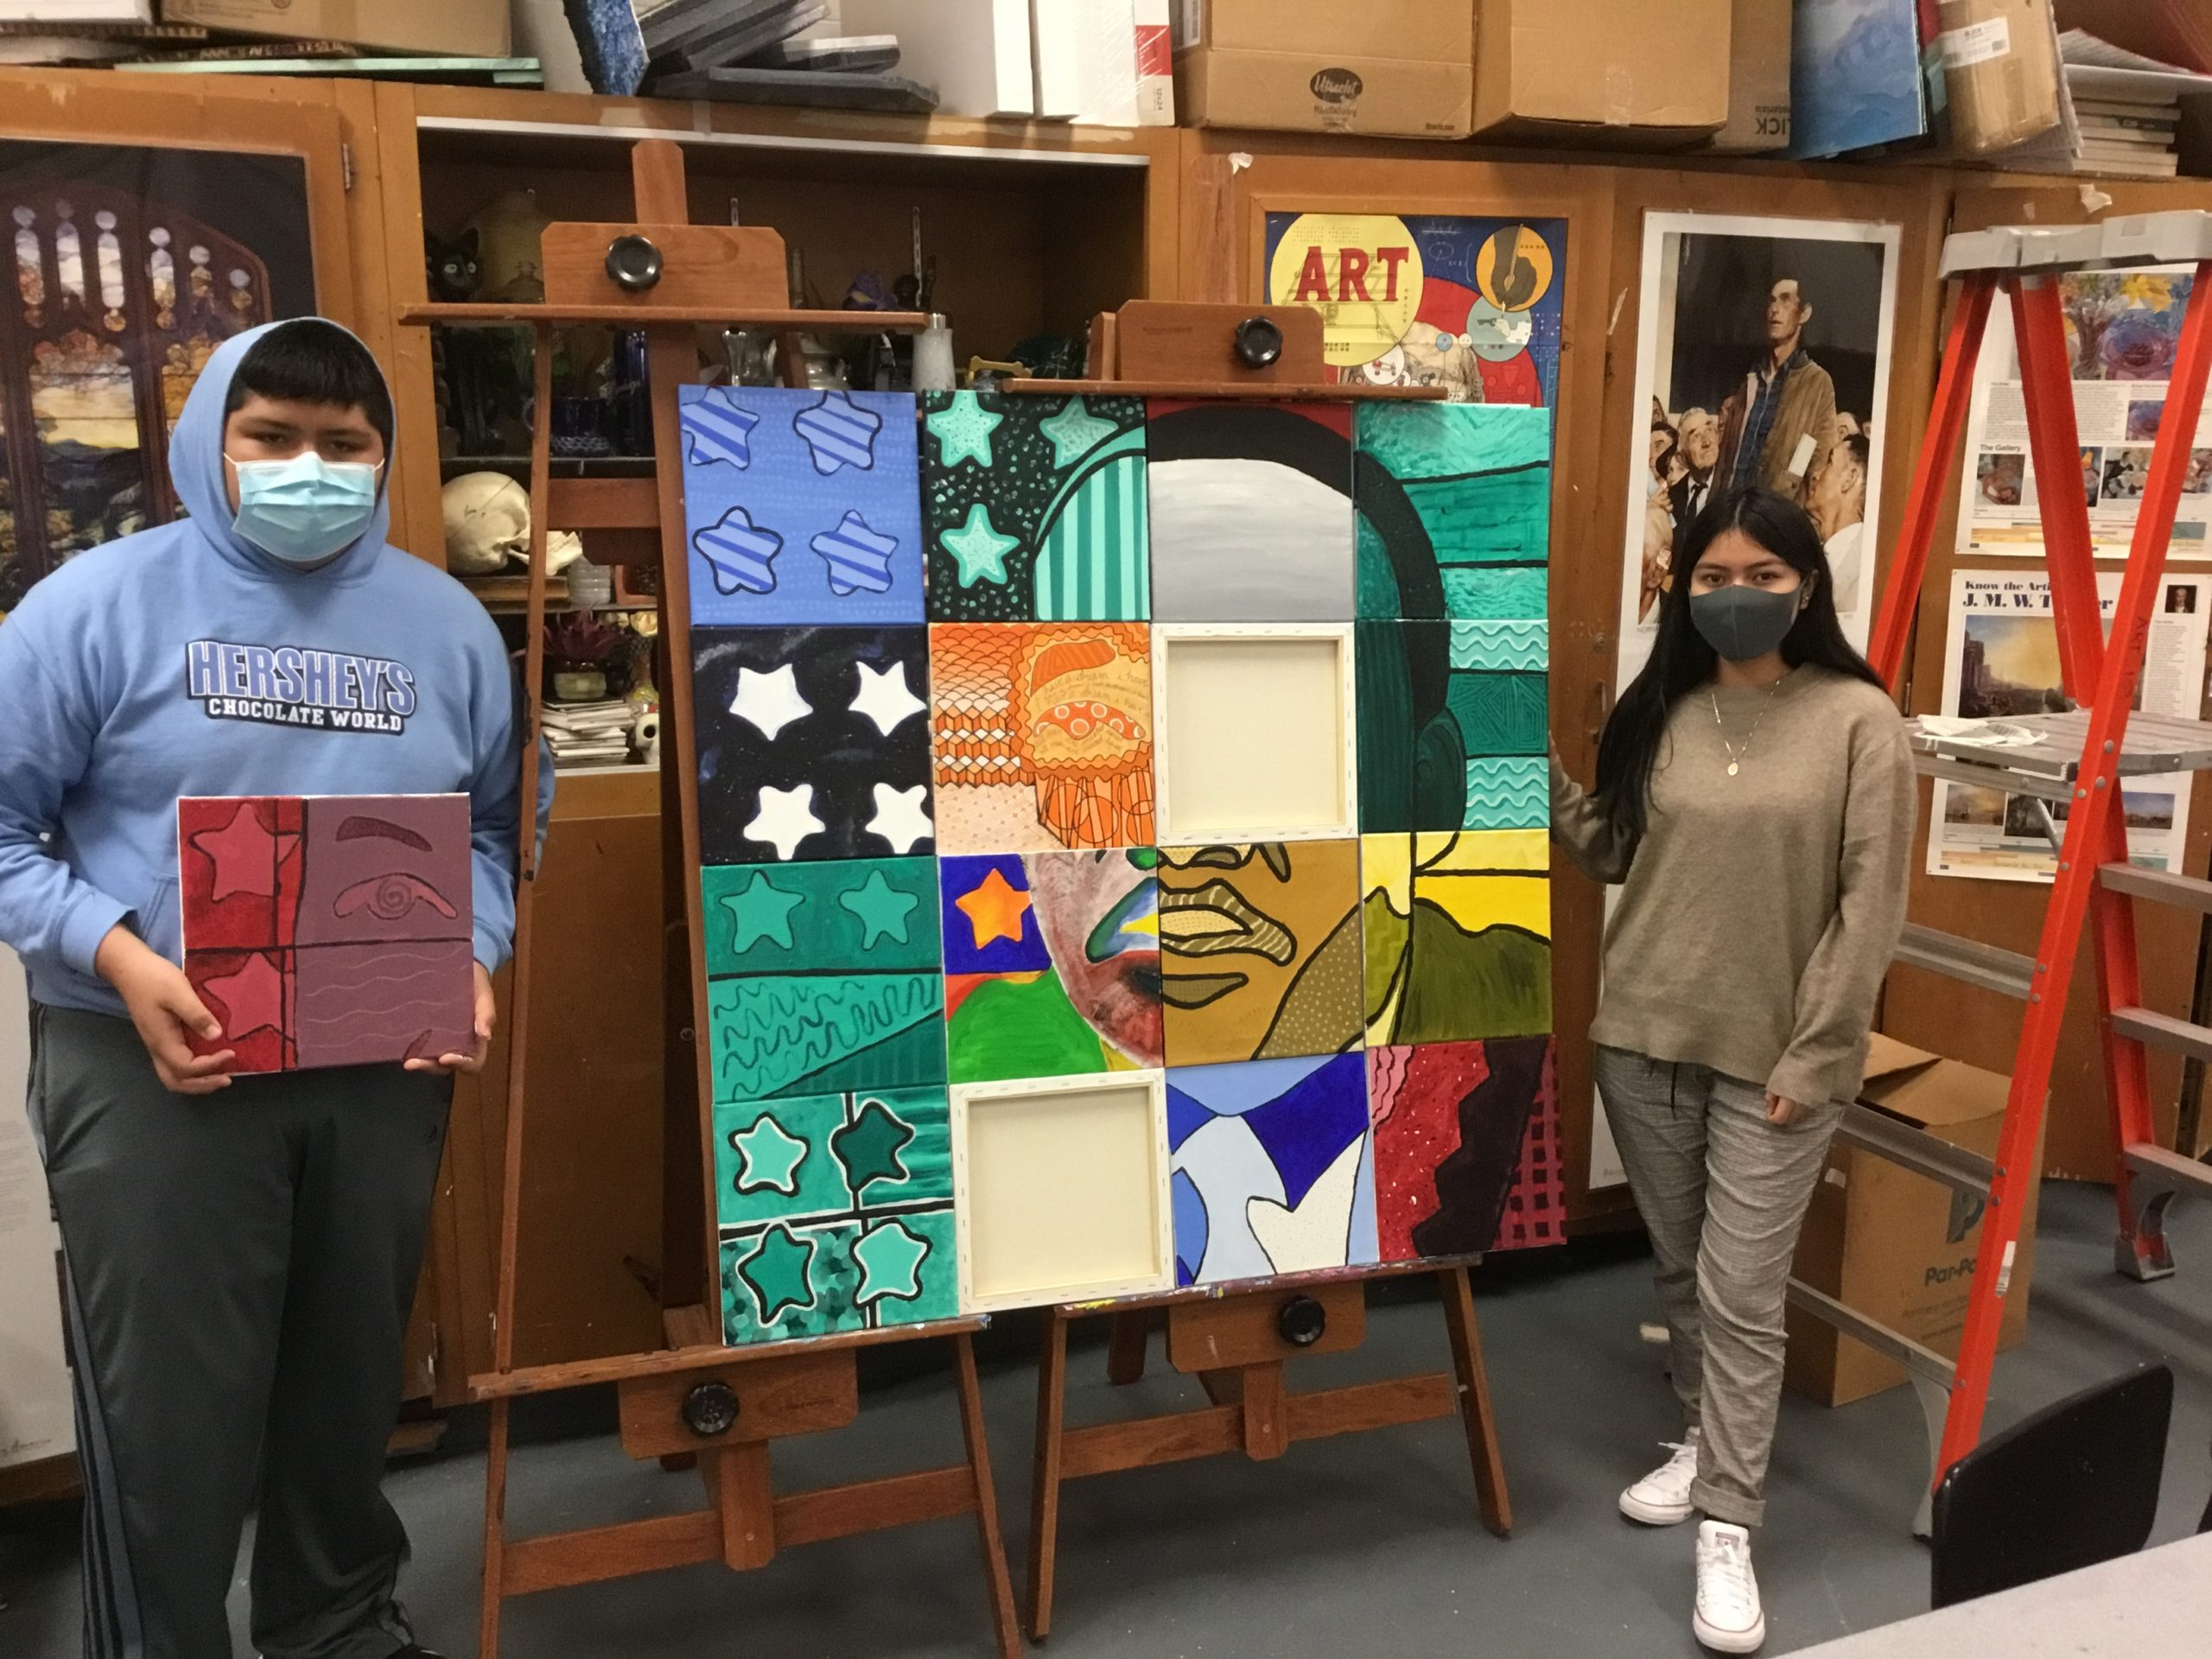 Southampton High School students created a portrait of Martin Luther King Jr. as part of a collaborative project with the East End Arts Council.